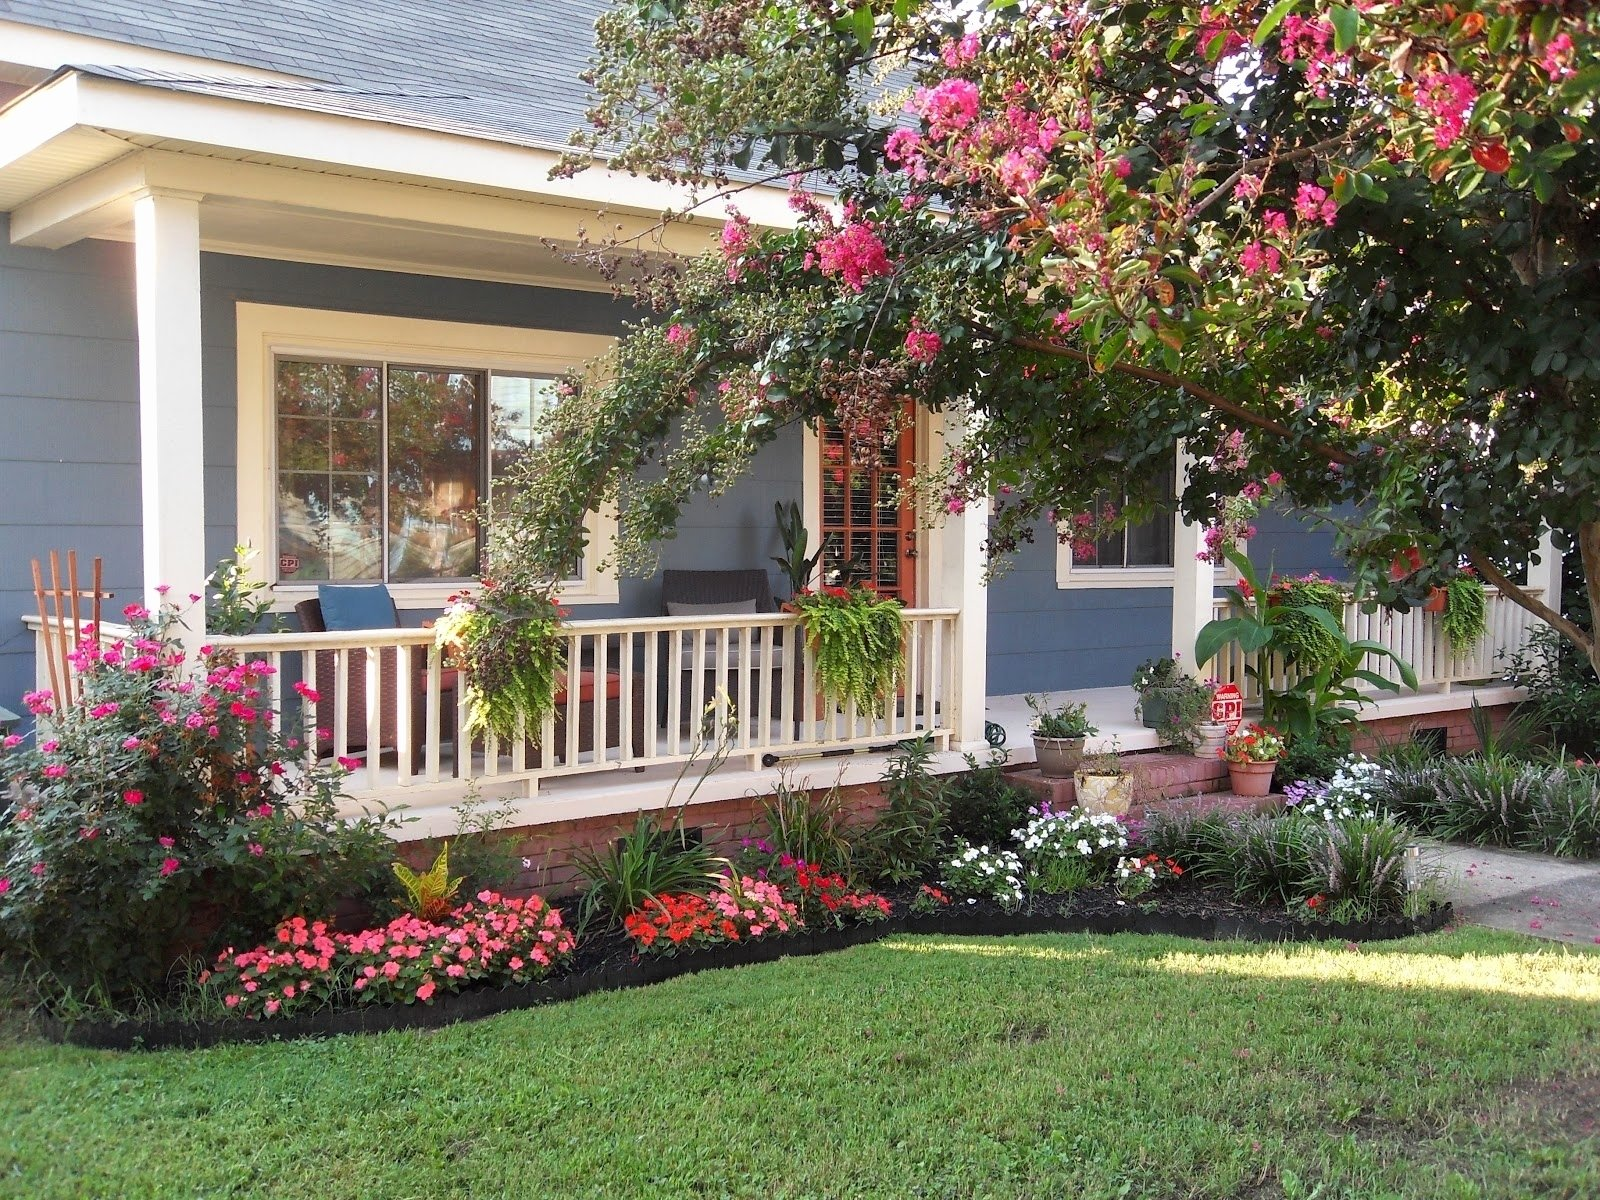 10 Stylish Simple Front Yard Landscaping Ideas On A Budget approved simple front yard landscaping ideas picture 37 of 46 2 2021